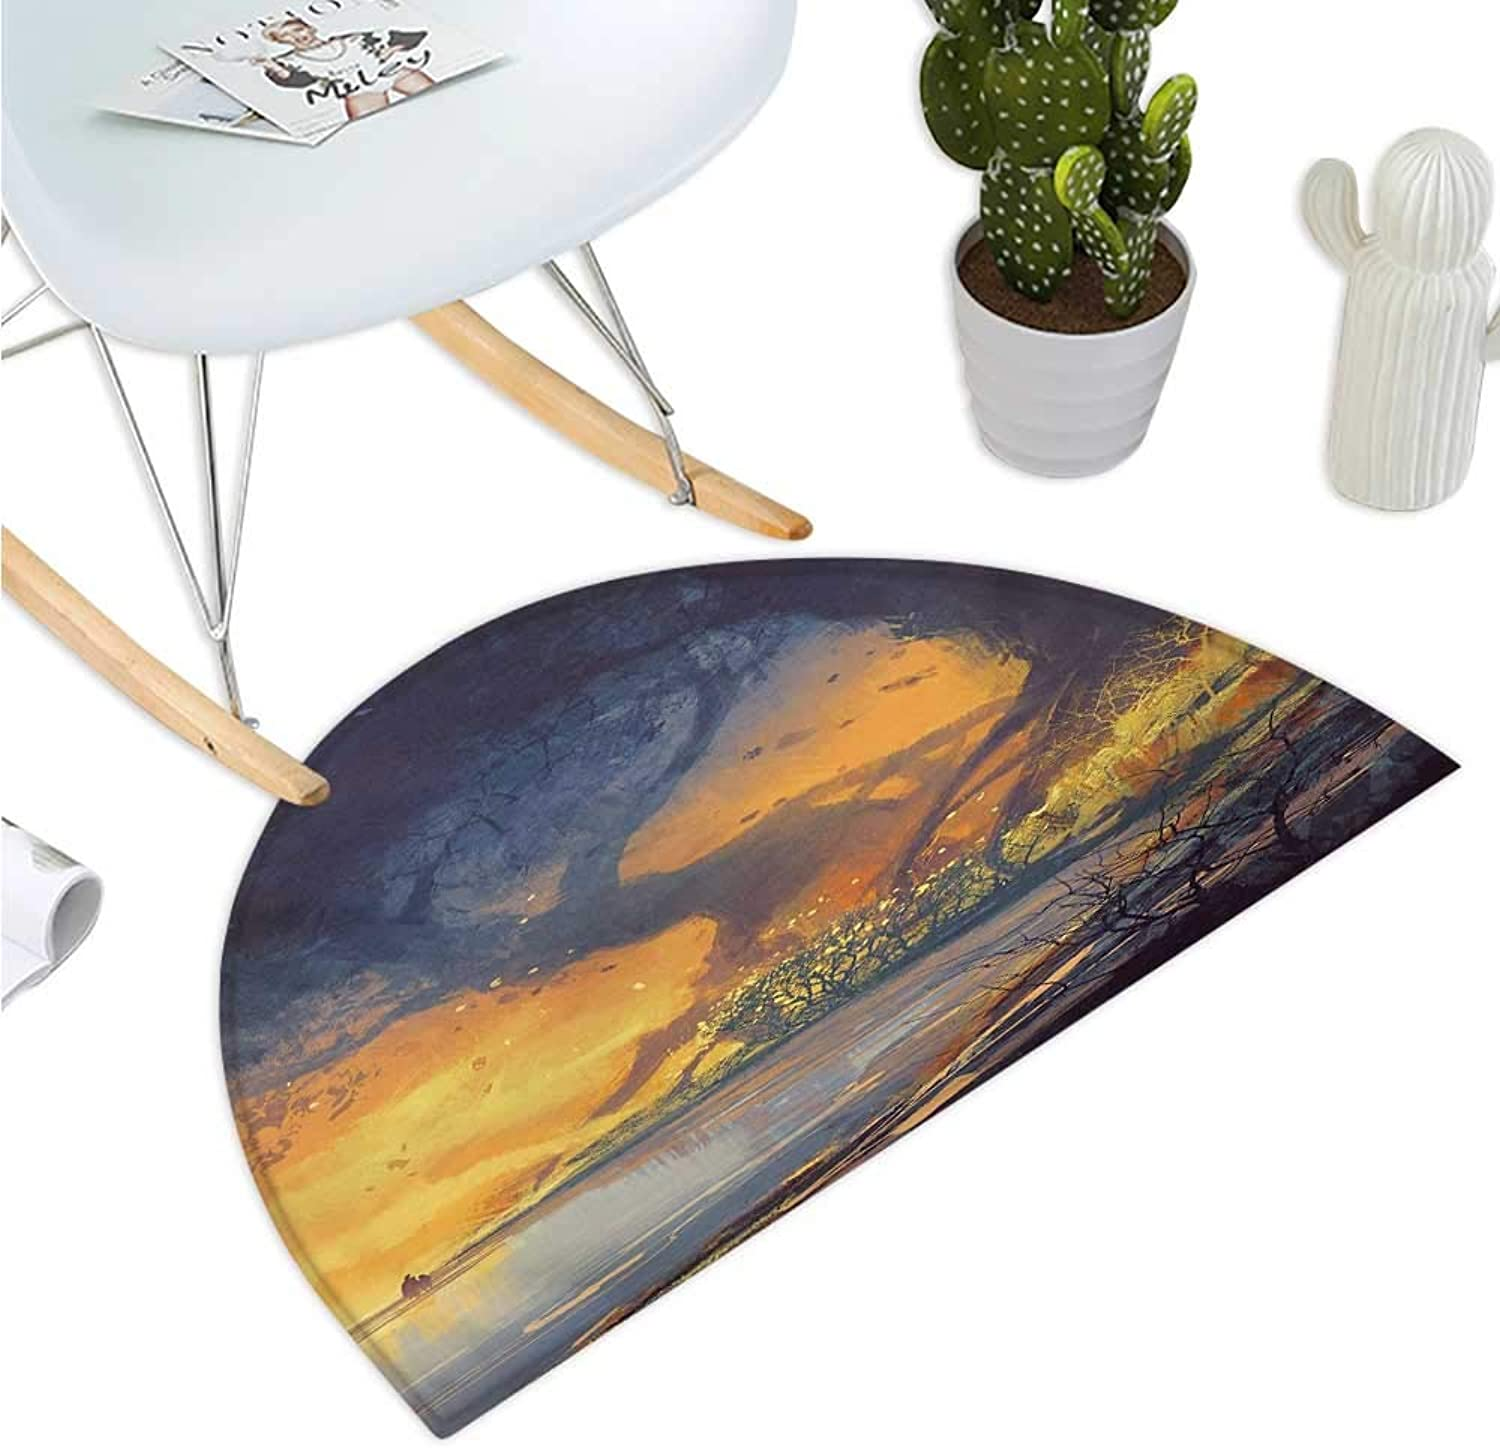 Fantasy Semicircular Cushion Artistic Landscape Painting of Big Trees with Huge Roots at Sunset Beach Seaside Bathroom Mat H 43.3  xD 64.9  orange bluee